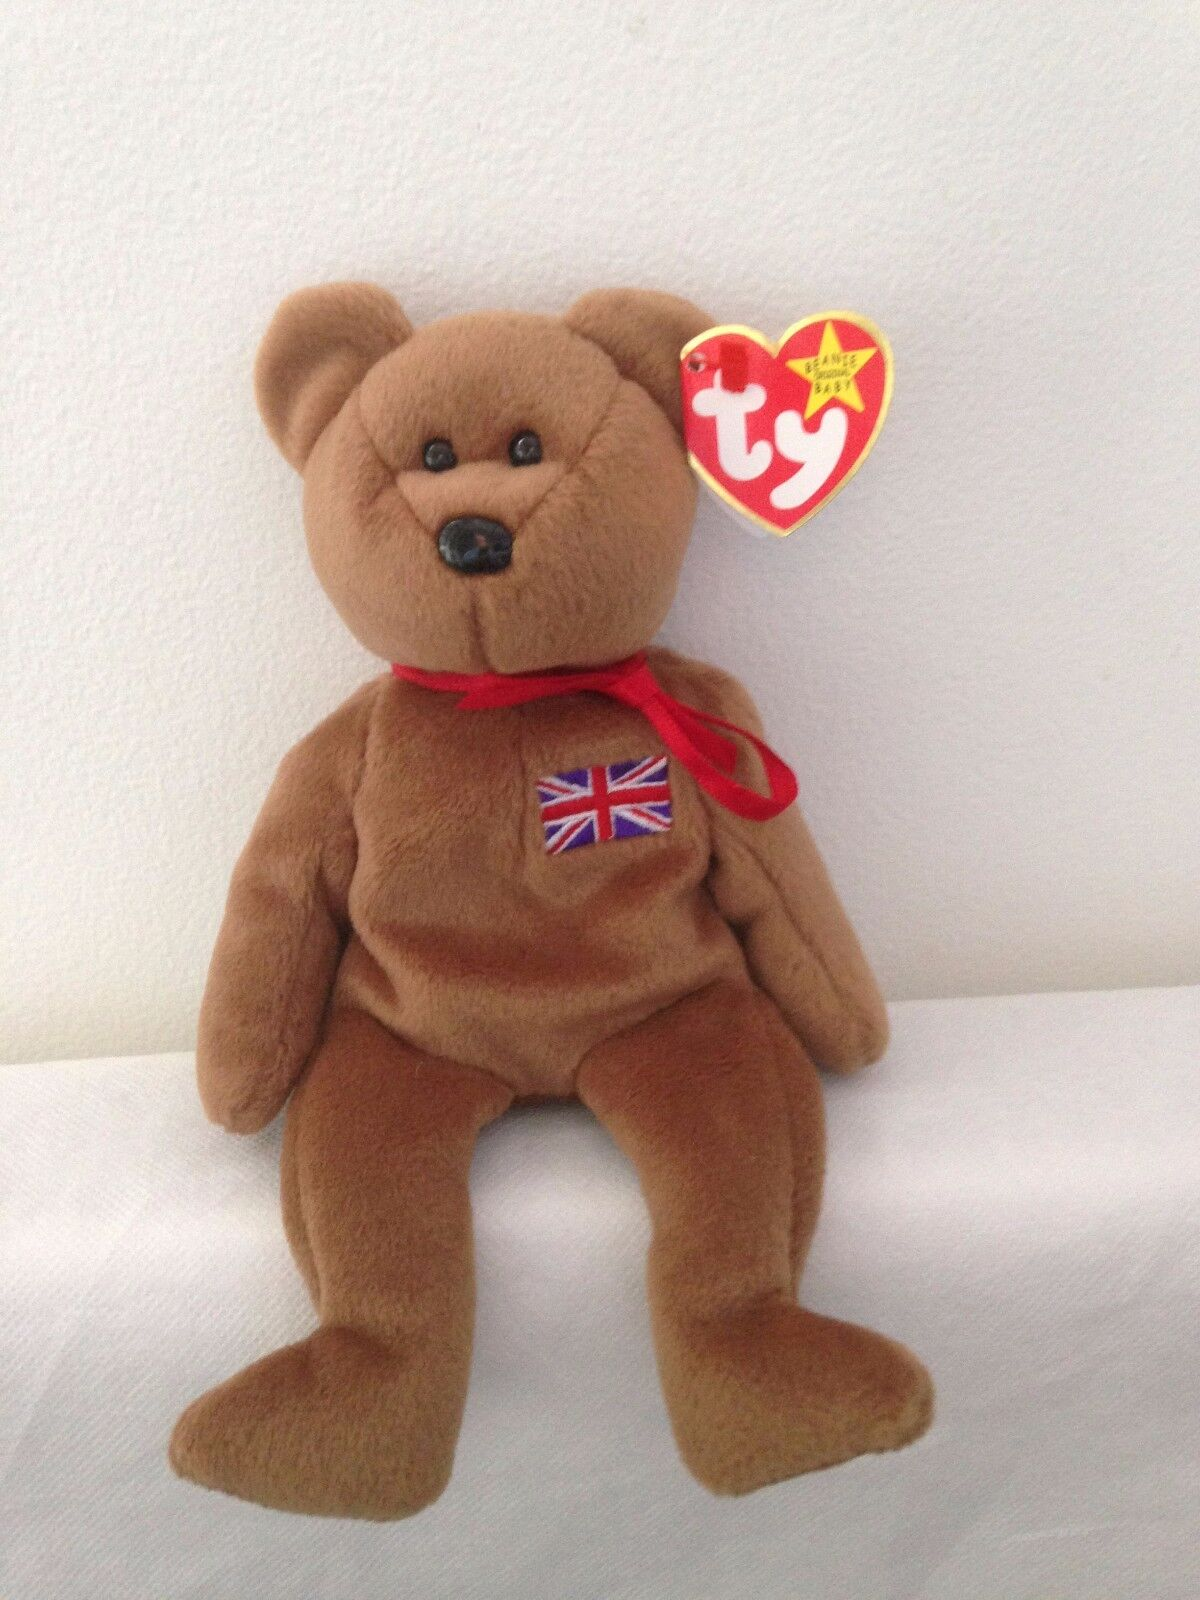 0a89a294721 TY Beanie Babies - Britannia The Bear (UK Exclusive) With Rare Red Tush  Stamp